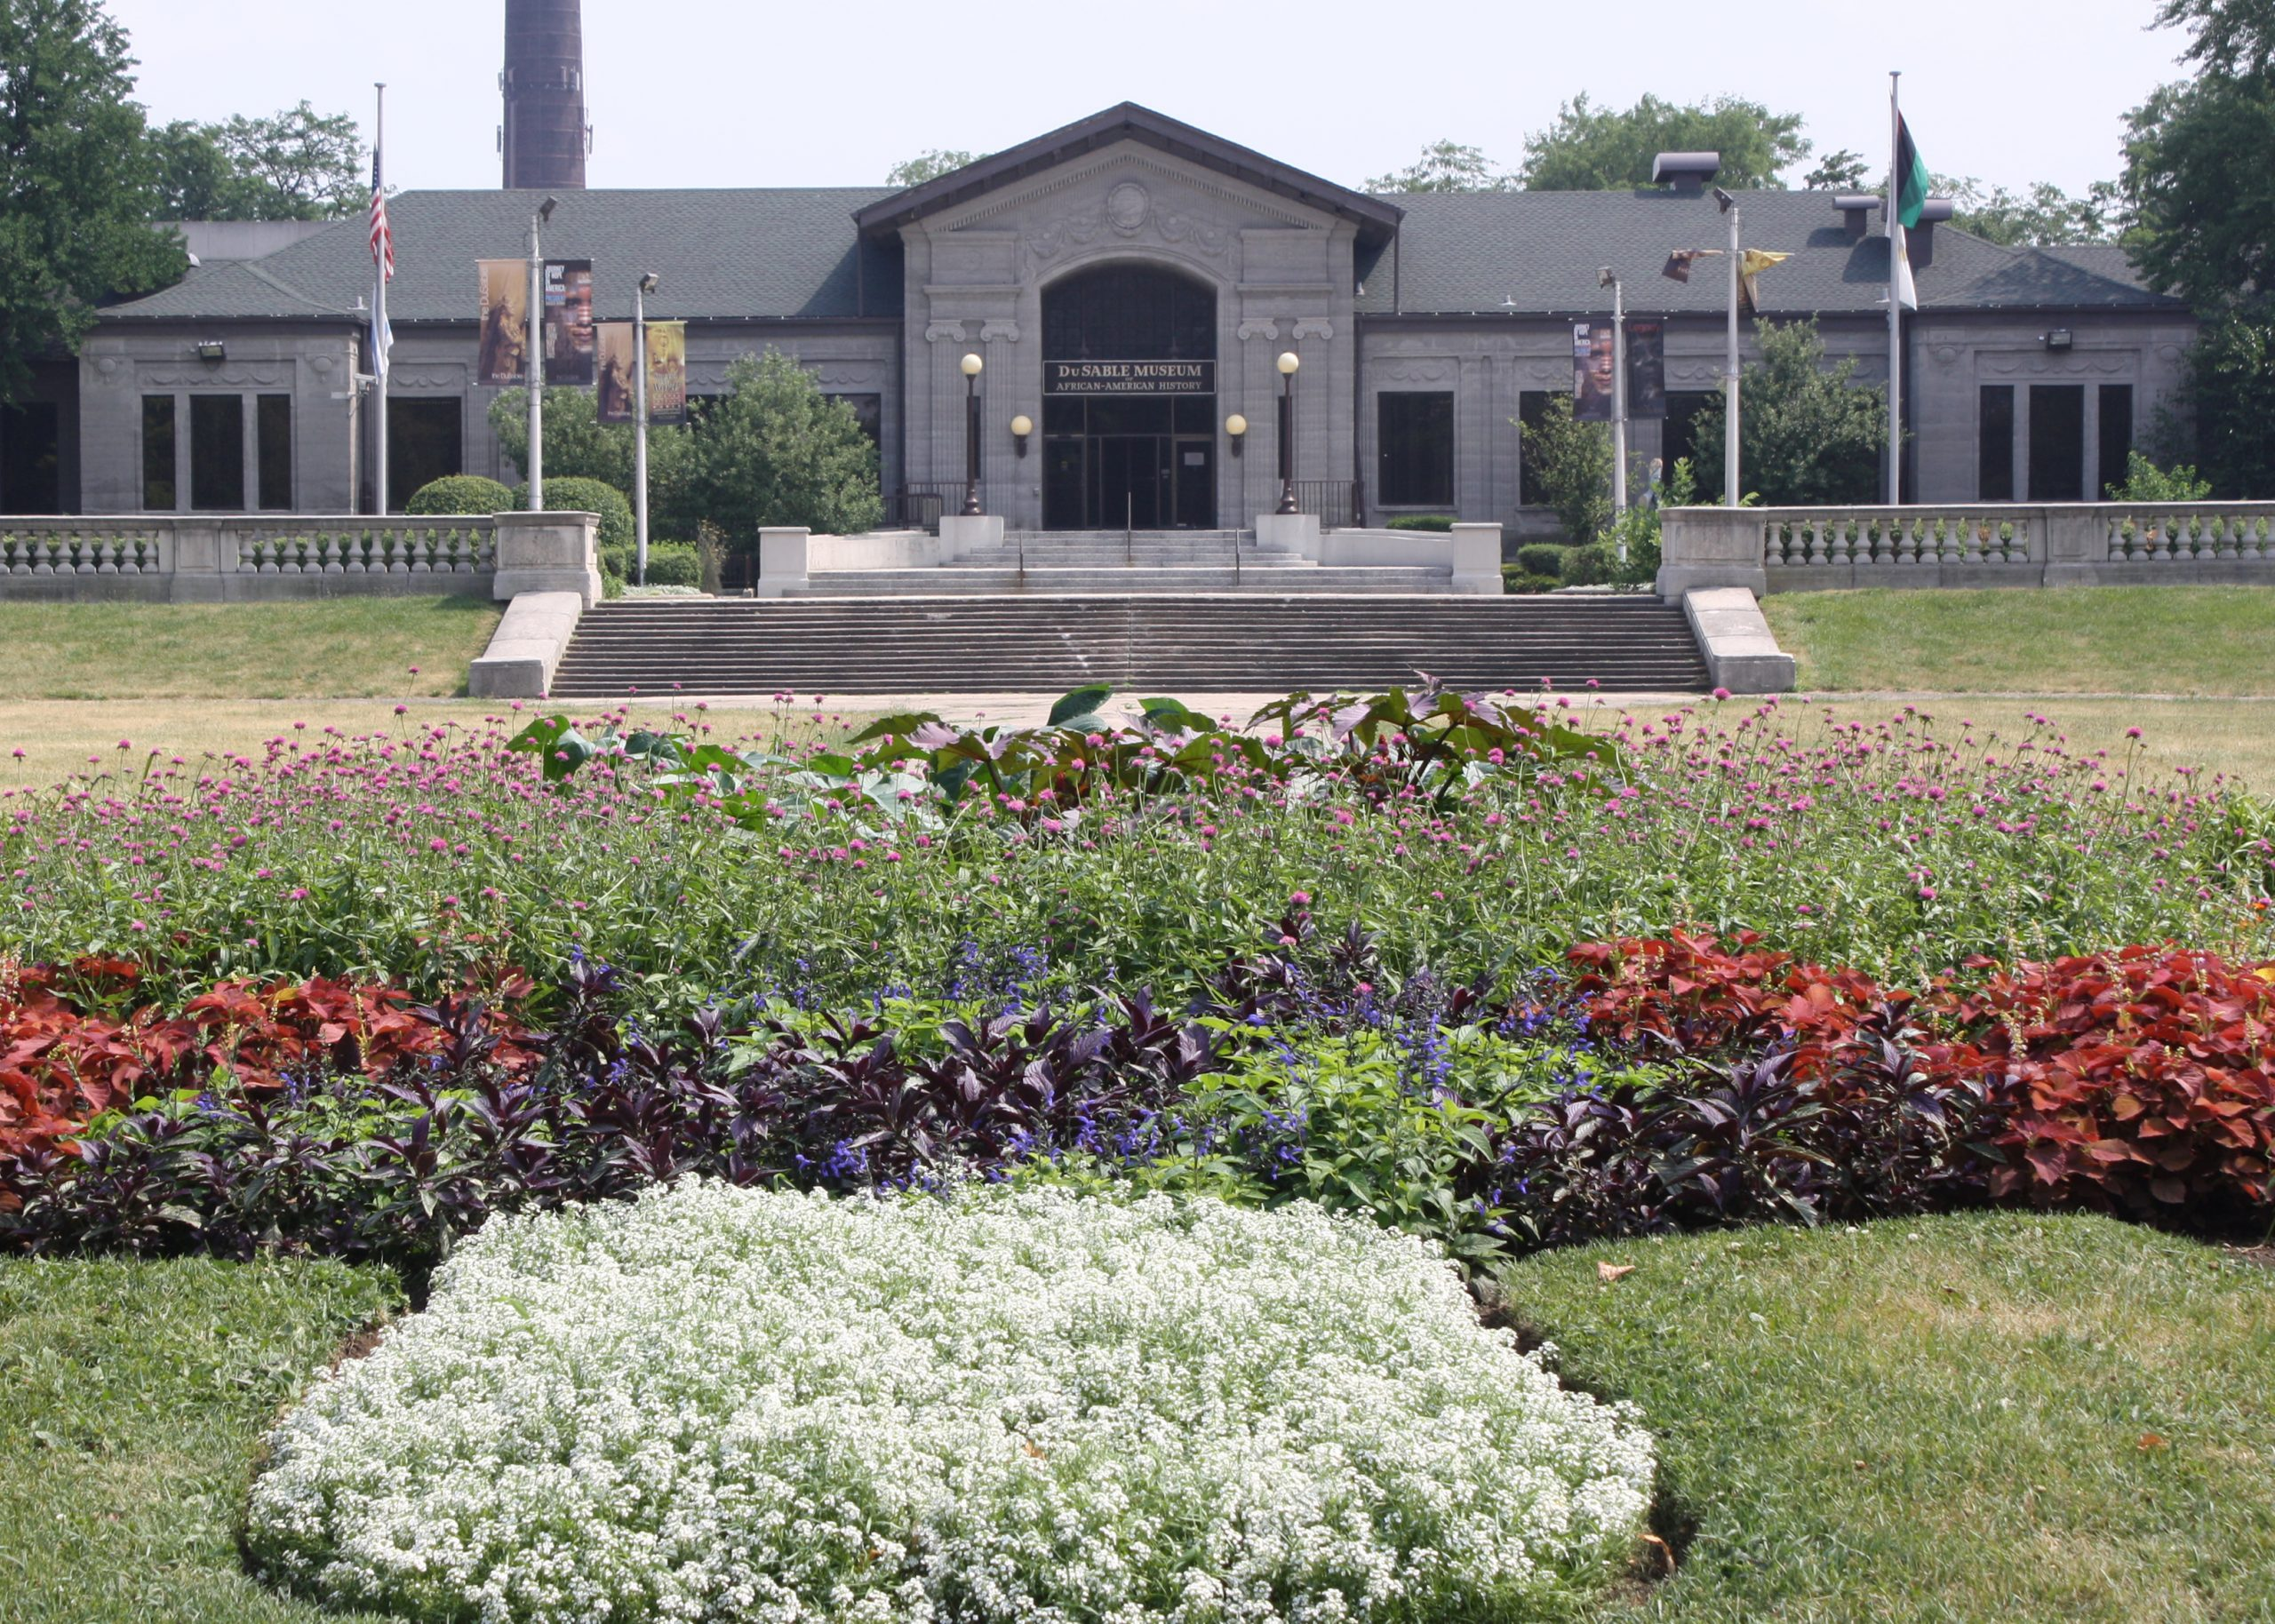 A flower garden blooms in front of the DuSable Museum building